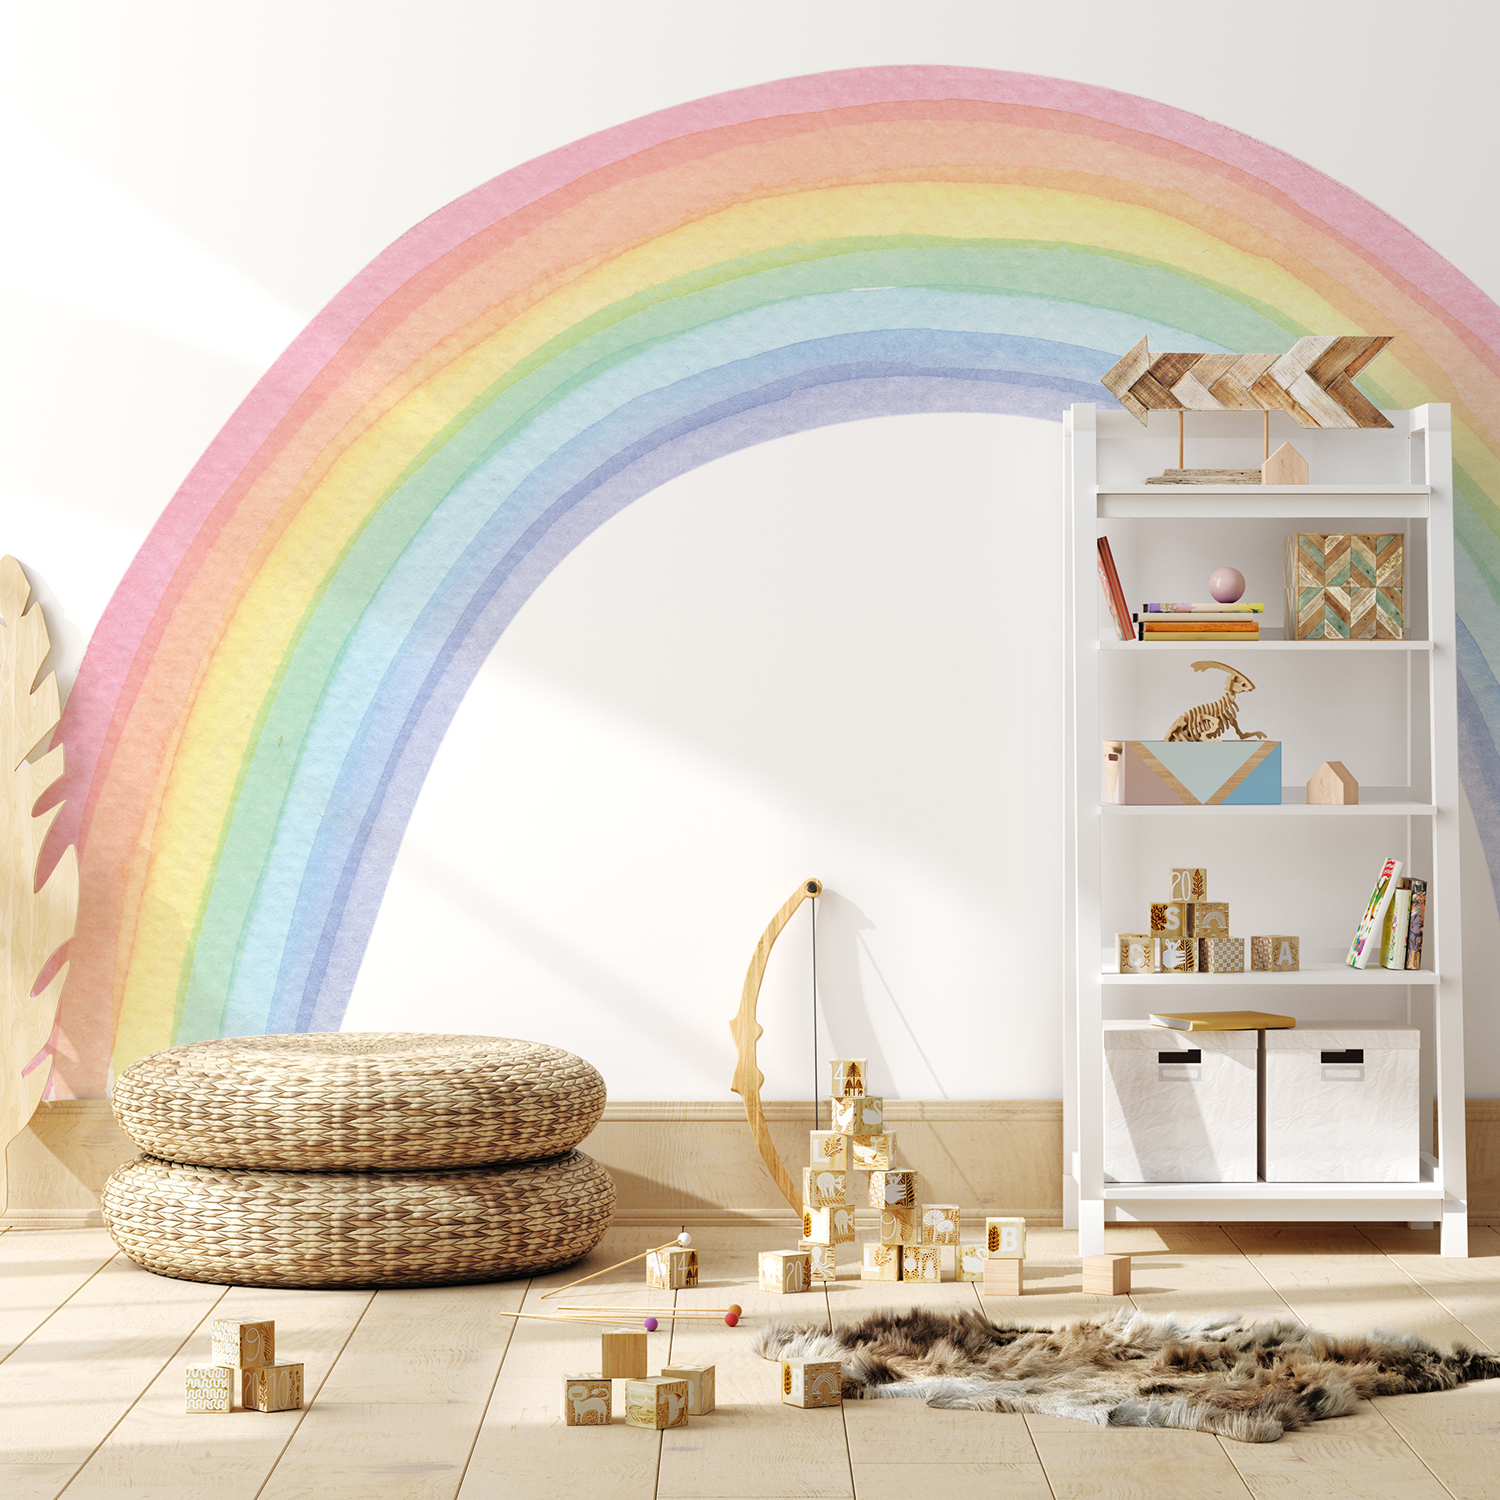 Funlife Fabric Wall Murals Watercolor Rainbow Mural Sticker Wall Fabric for Bedroom